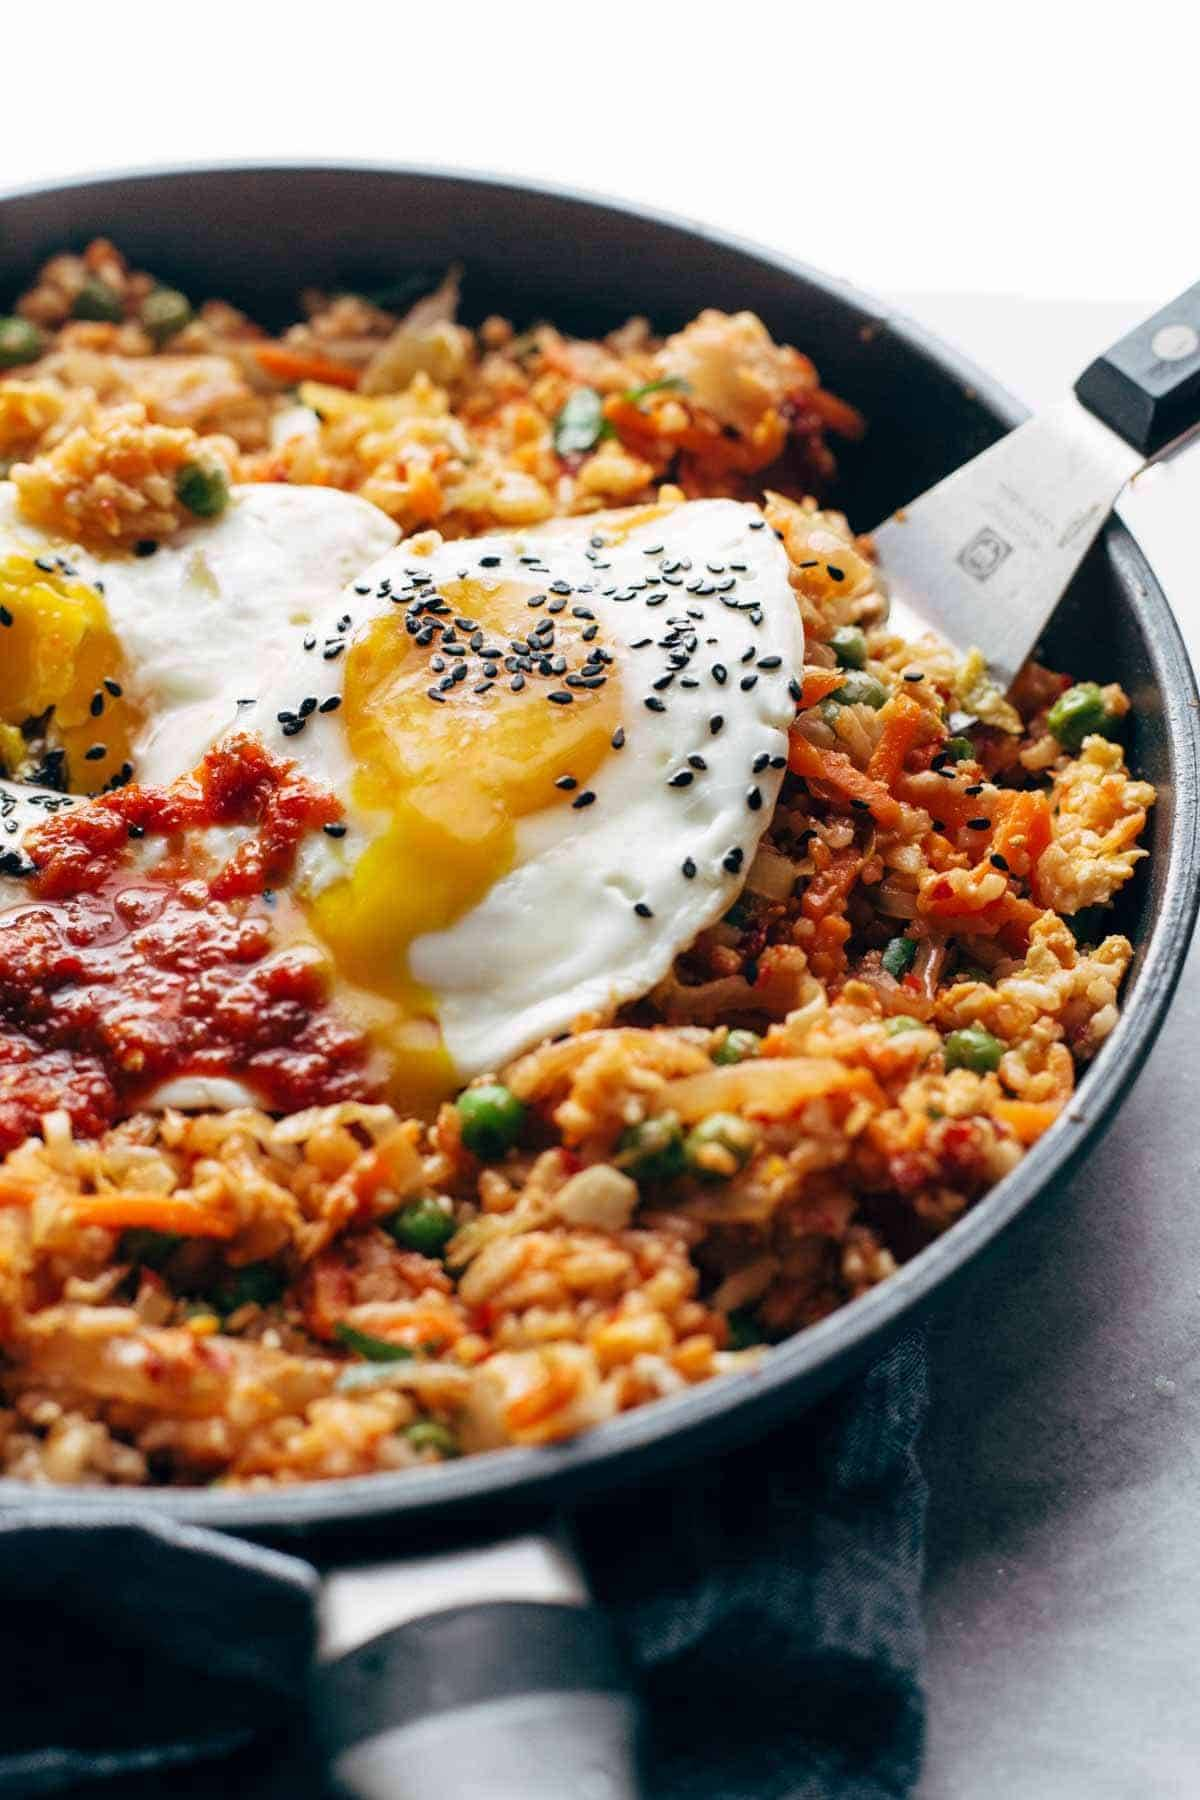 Food Network Kimchi Fried Rice